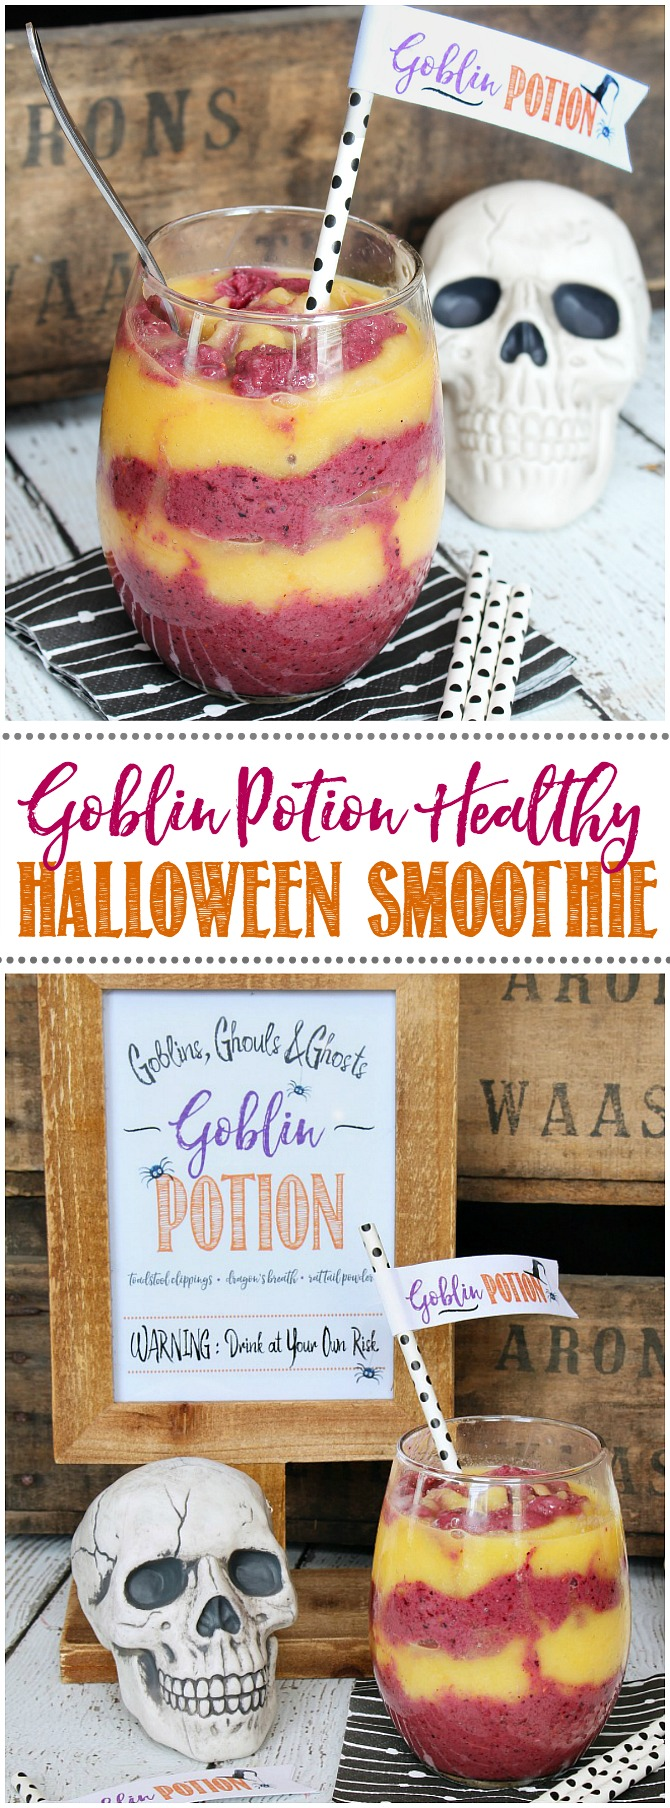 Goblin potion healthy Halloween smoothie with swirls or orange and berry smoothie.